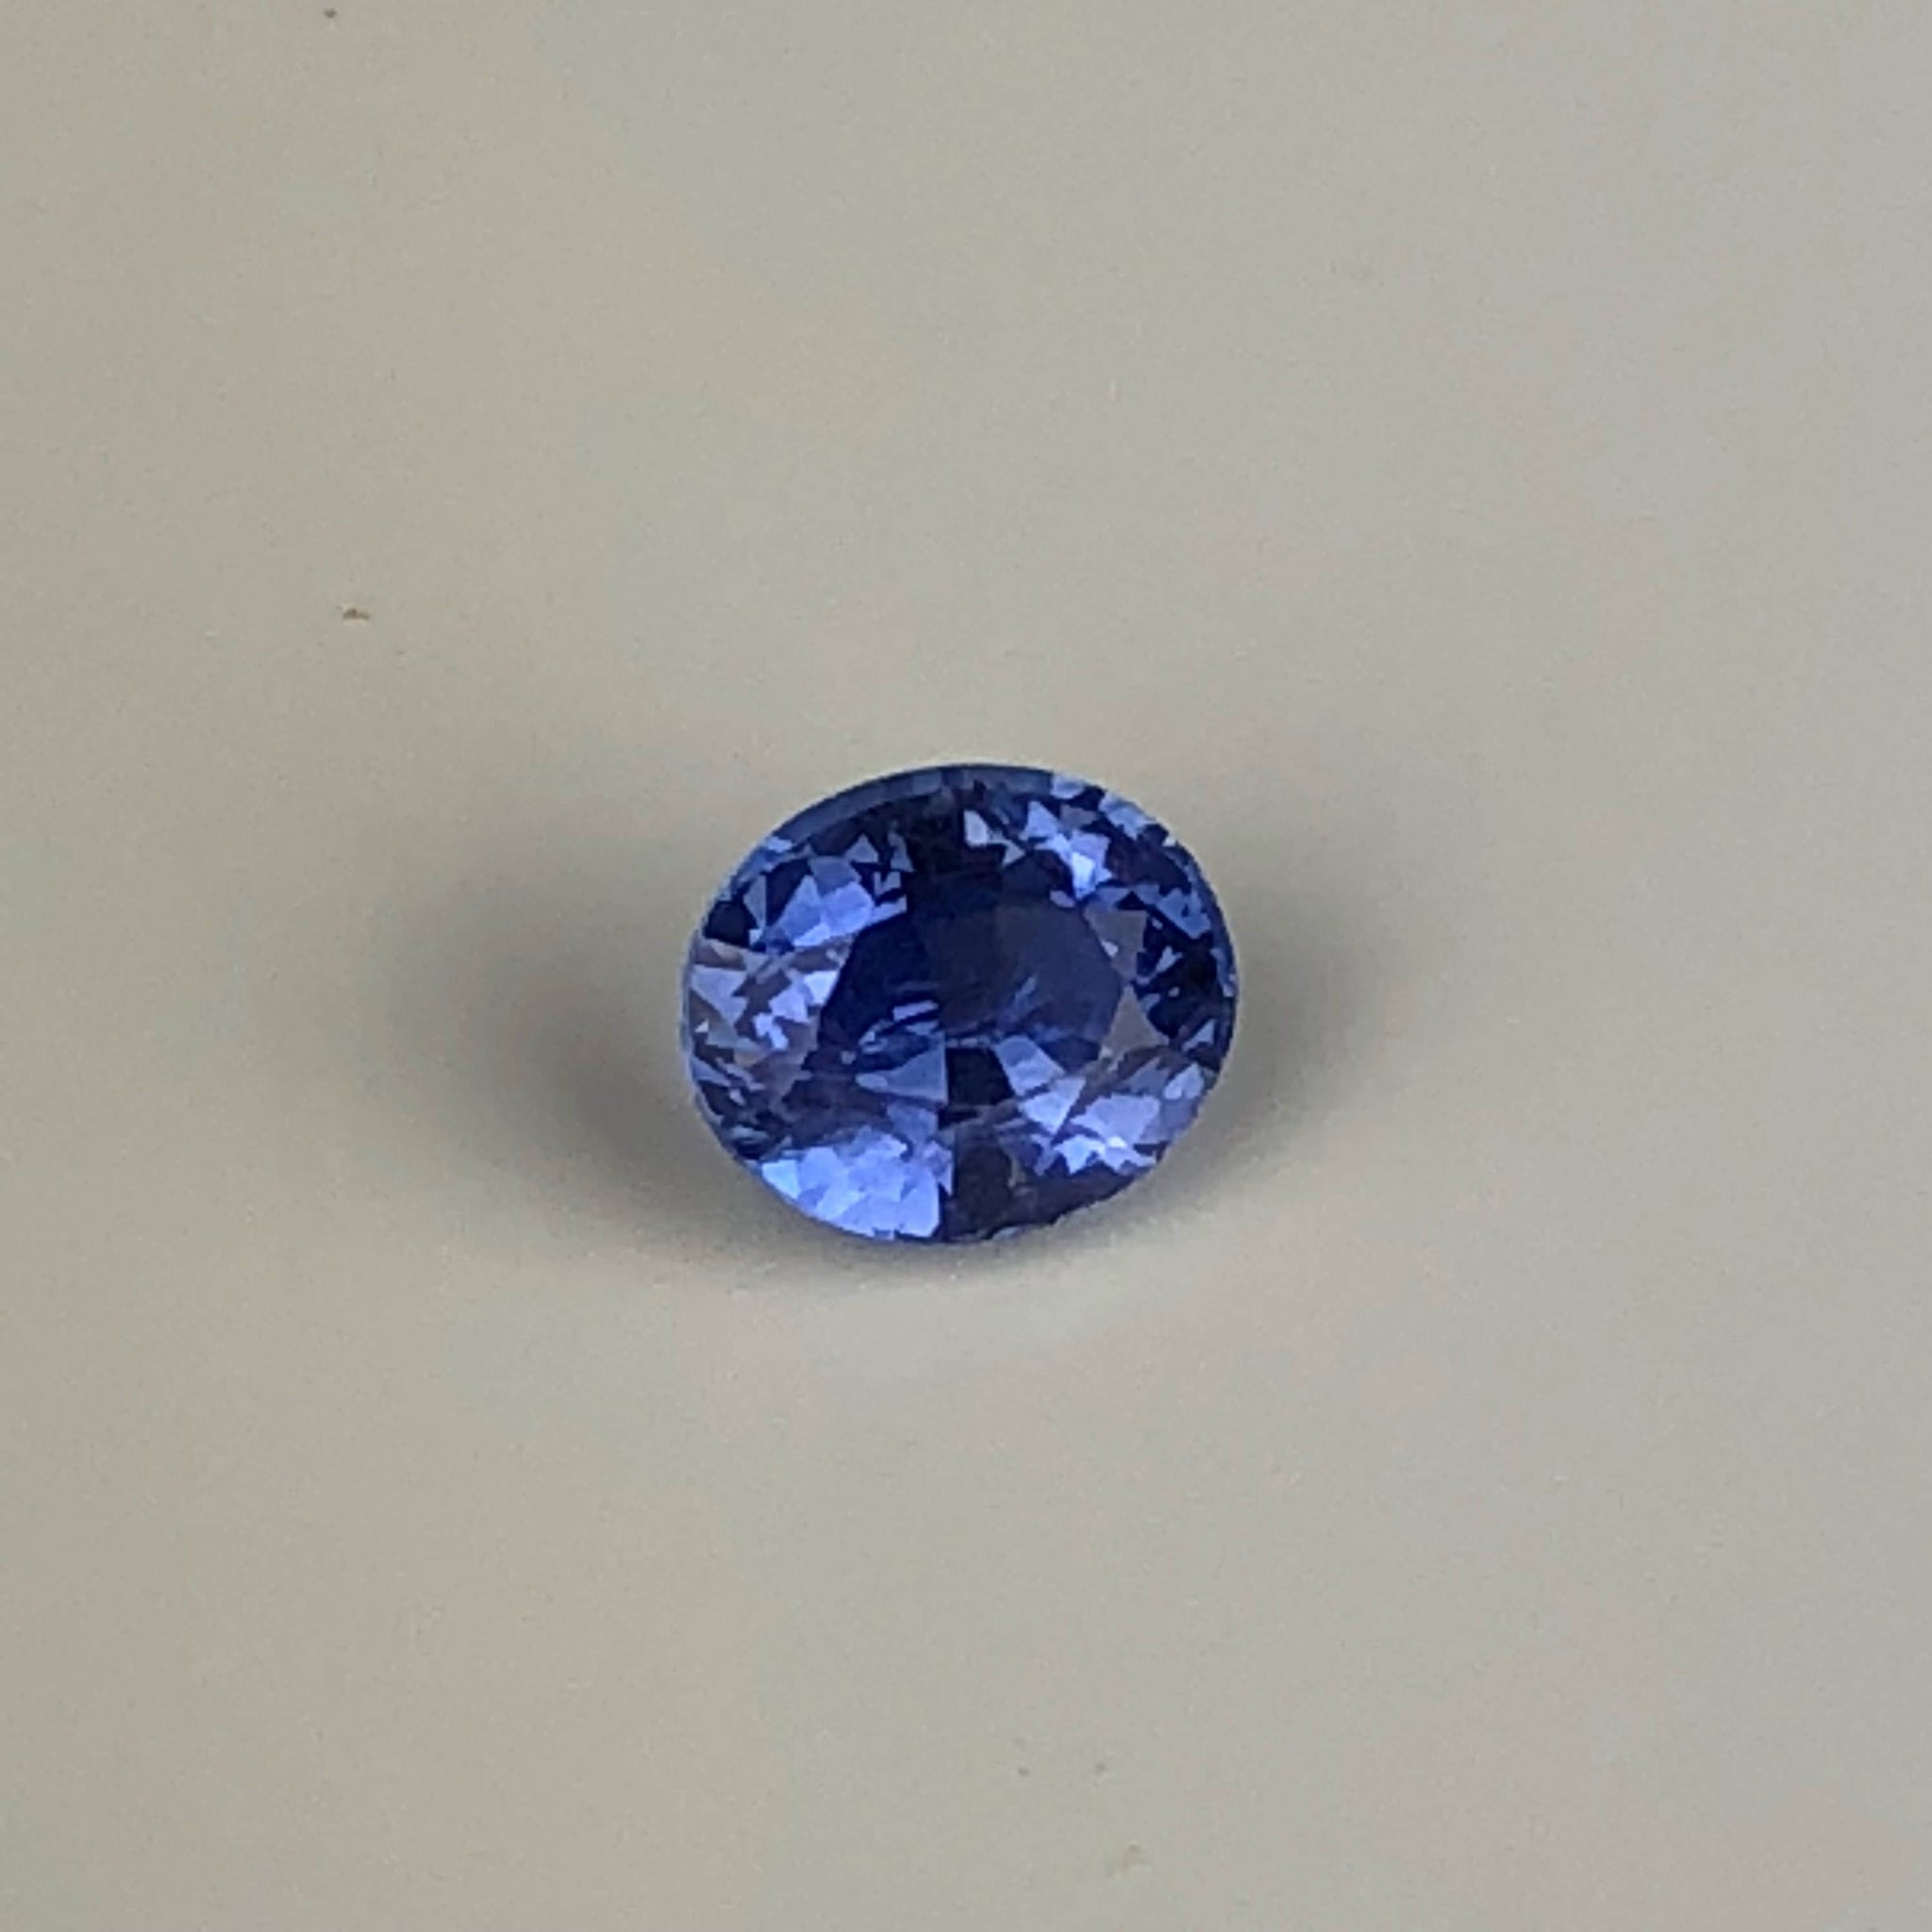 press auction sapphire untreated about en jewellery dorotheum kashmir a brillantring results brilliant ring with selected kaschmirsaphir us